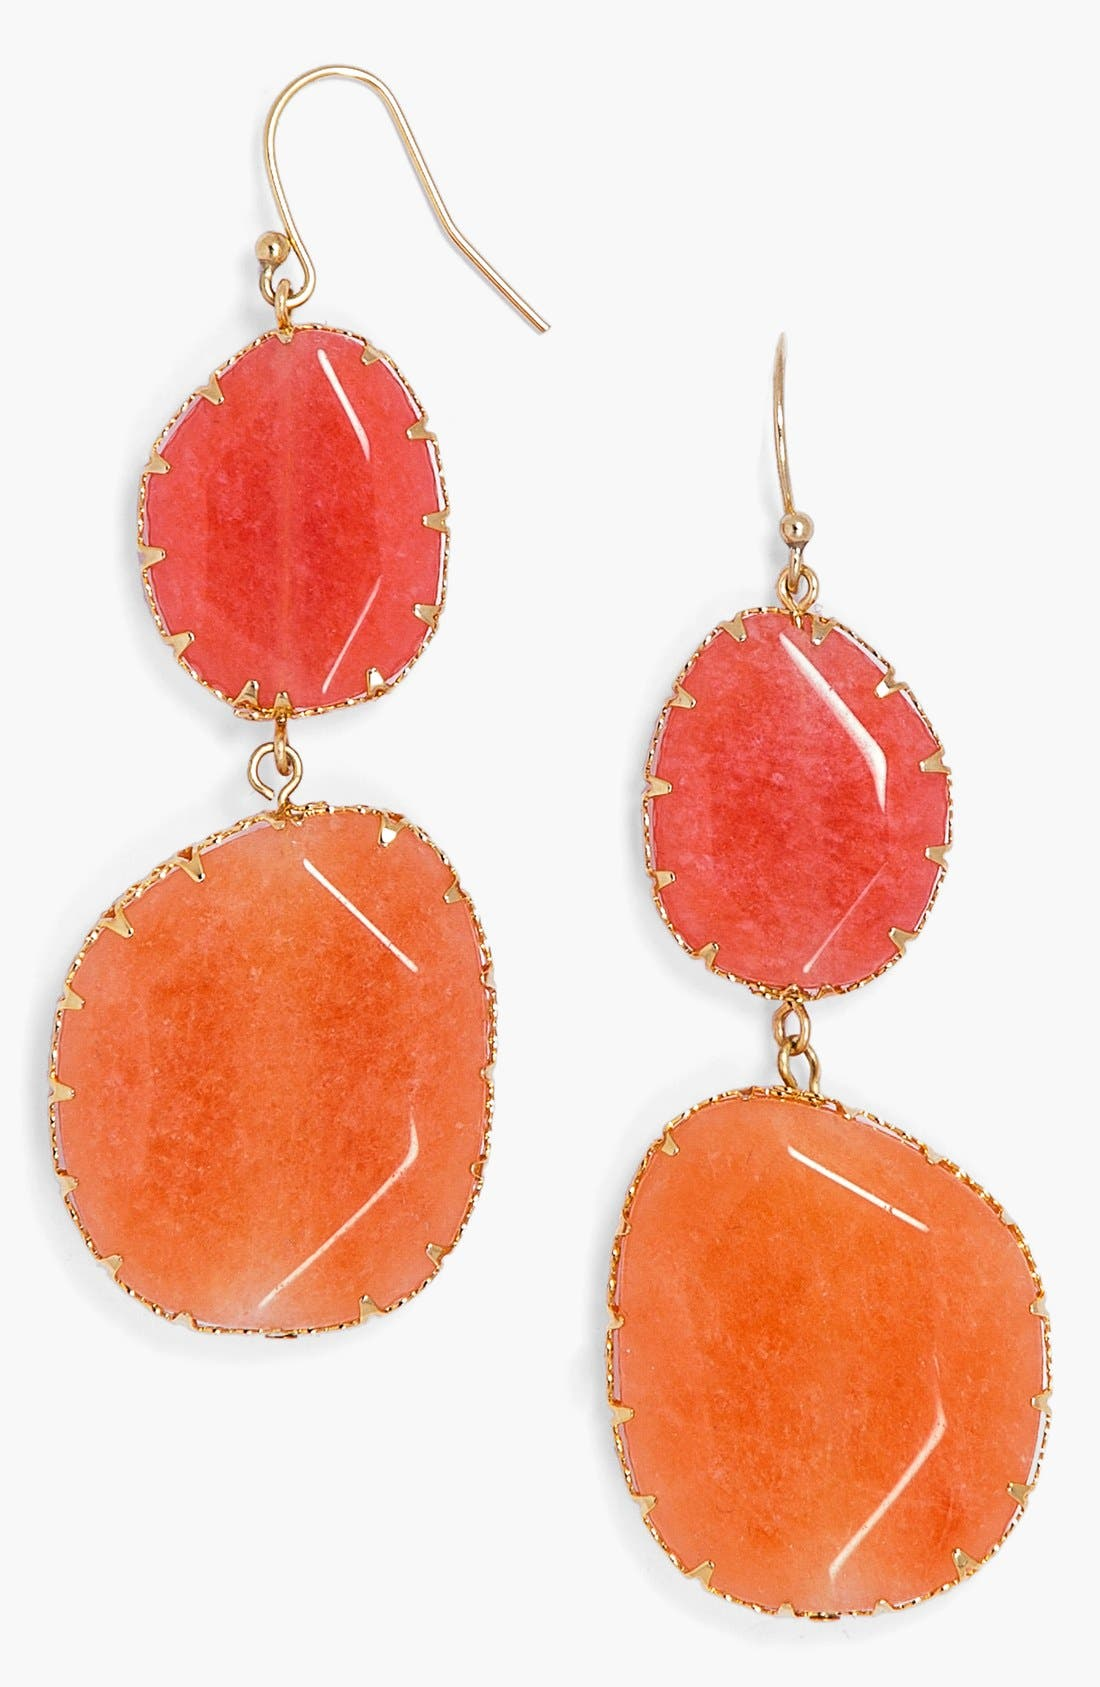 'Boho' Drop Earrings,                         Main,                         color, Coral/ Gold